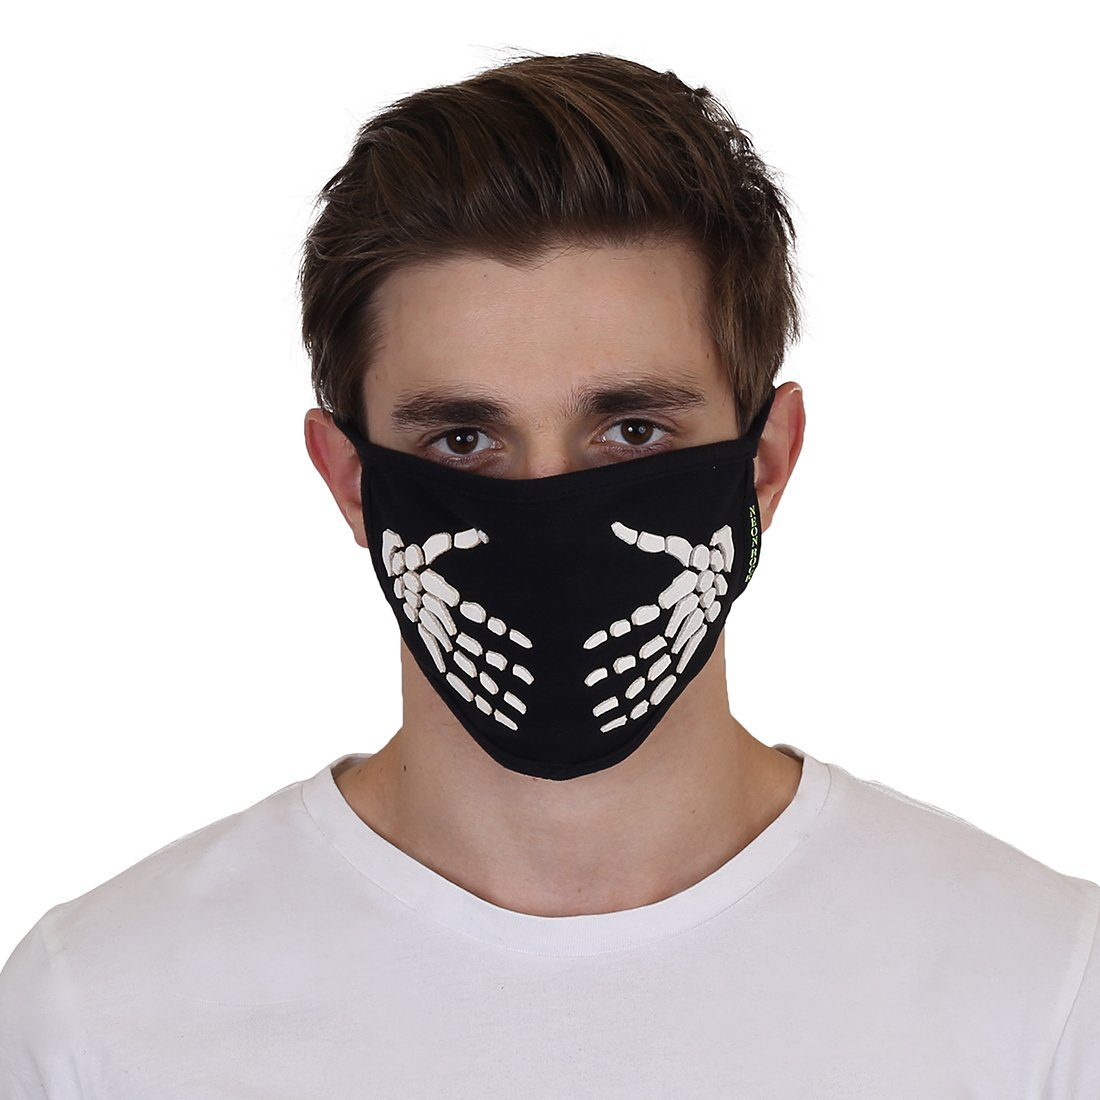 m0040 Mask Riding Nr Mask Neon Protection Bike Biker Black Mouth Safety Pollution skeleton Face Rock Mask Hand dust Half